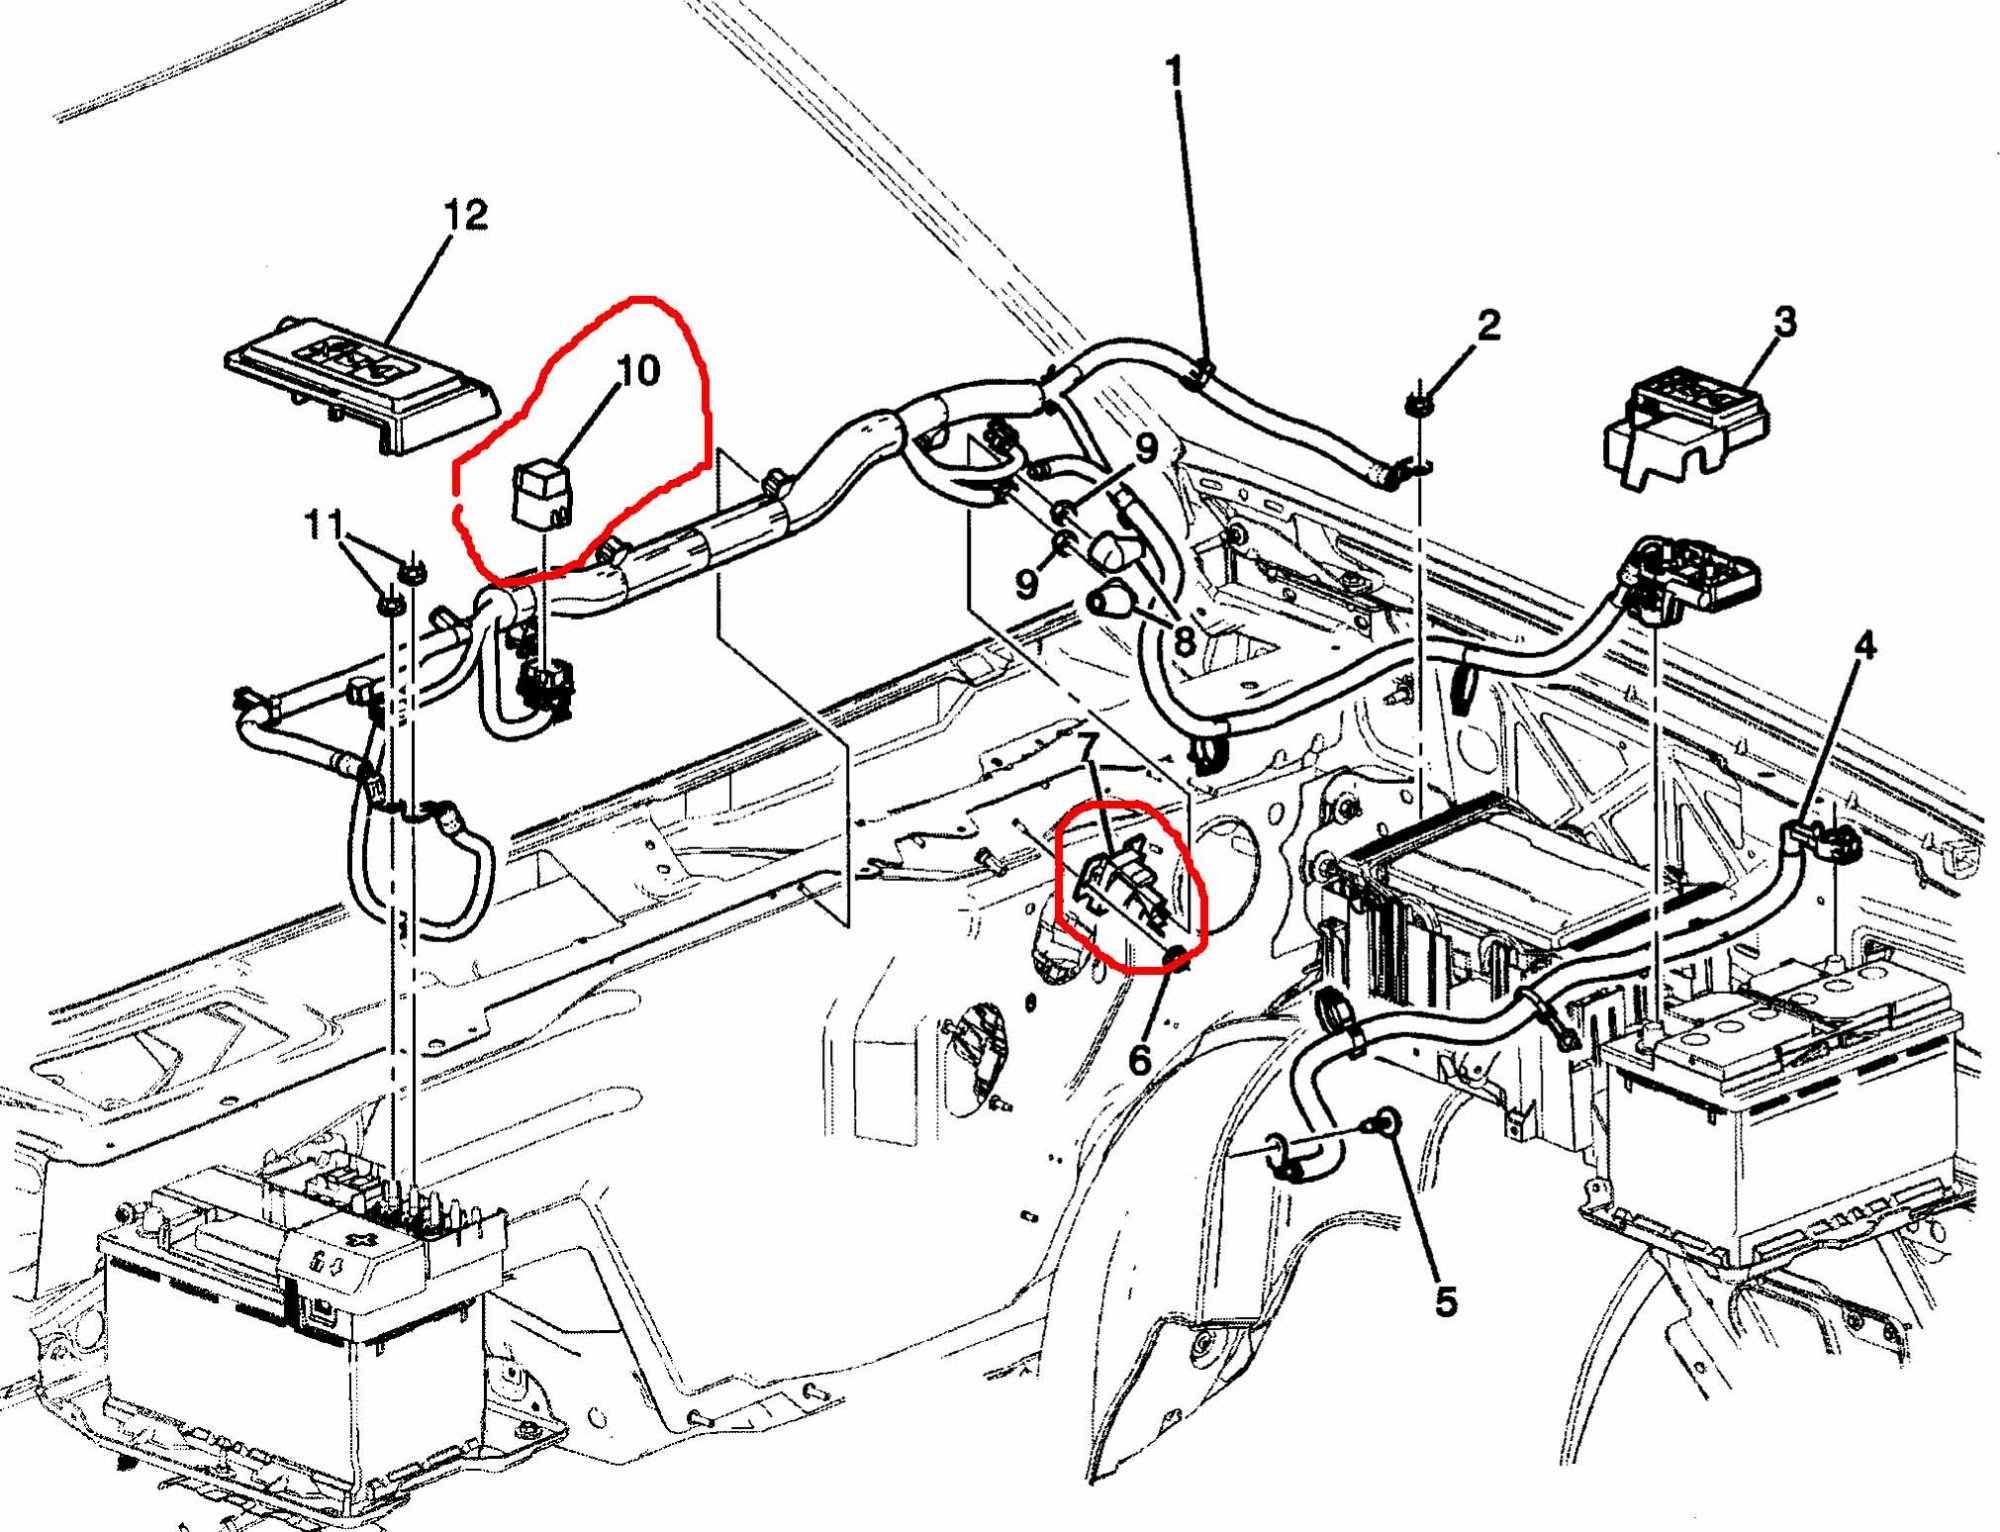 Silverado Drawing At Free For Personal Use 2008 Cruise Control Wiring Diagram 2000x1532 Auxiliary Battery